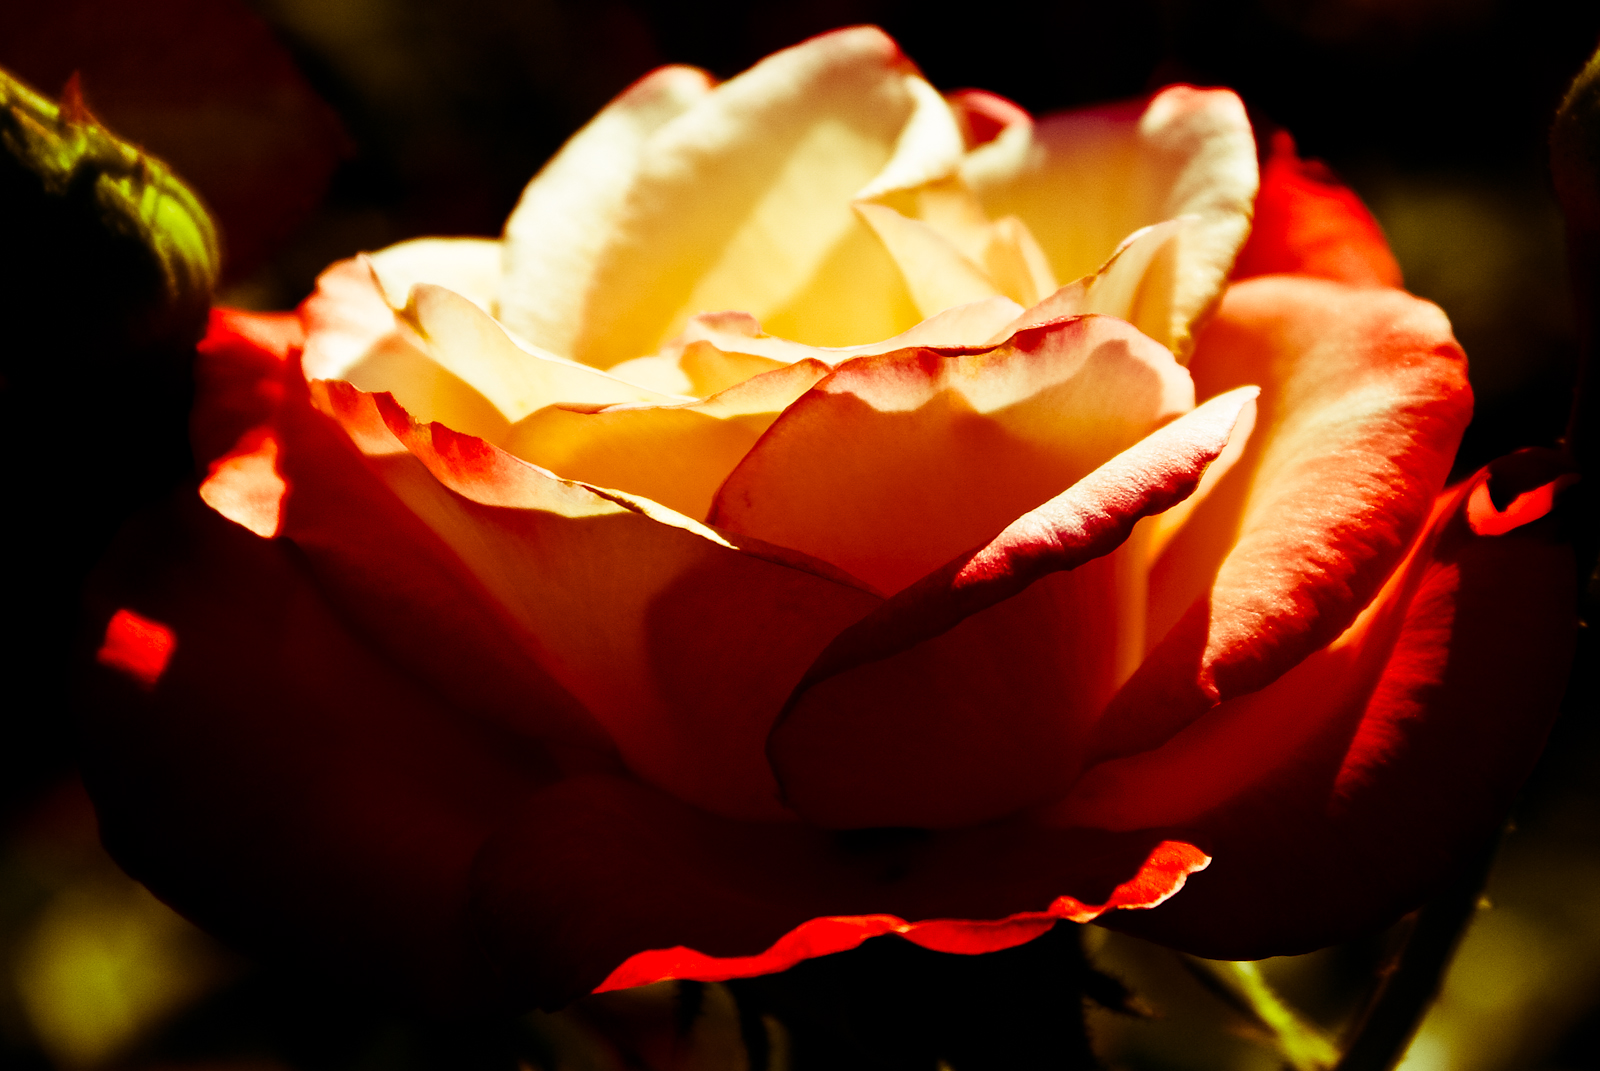 A Yellow Rose With Red Edges Dark Background